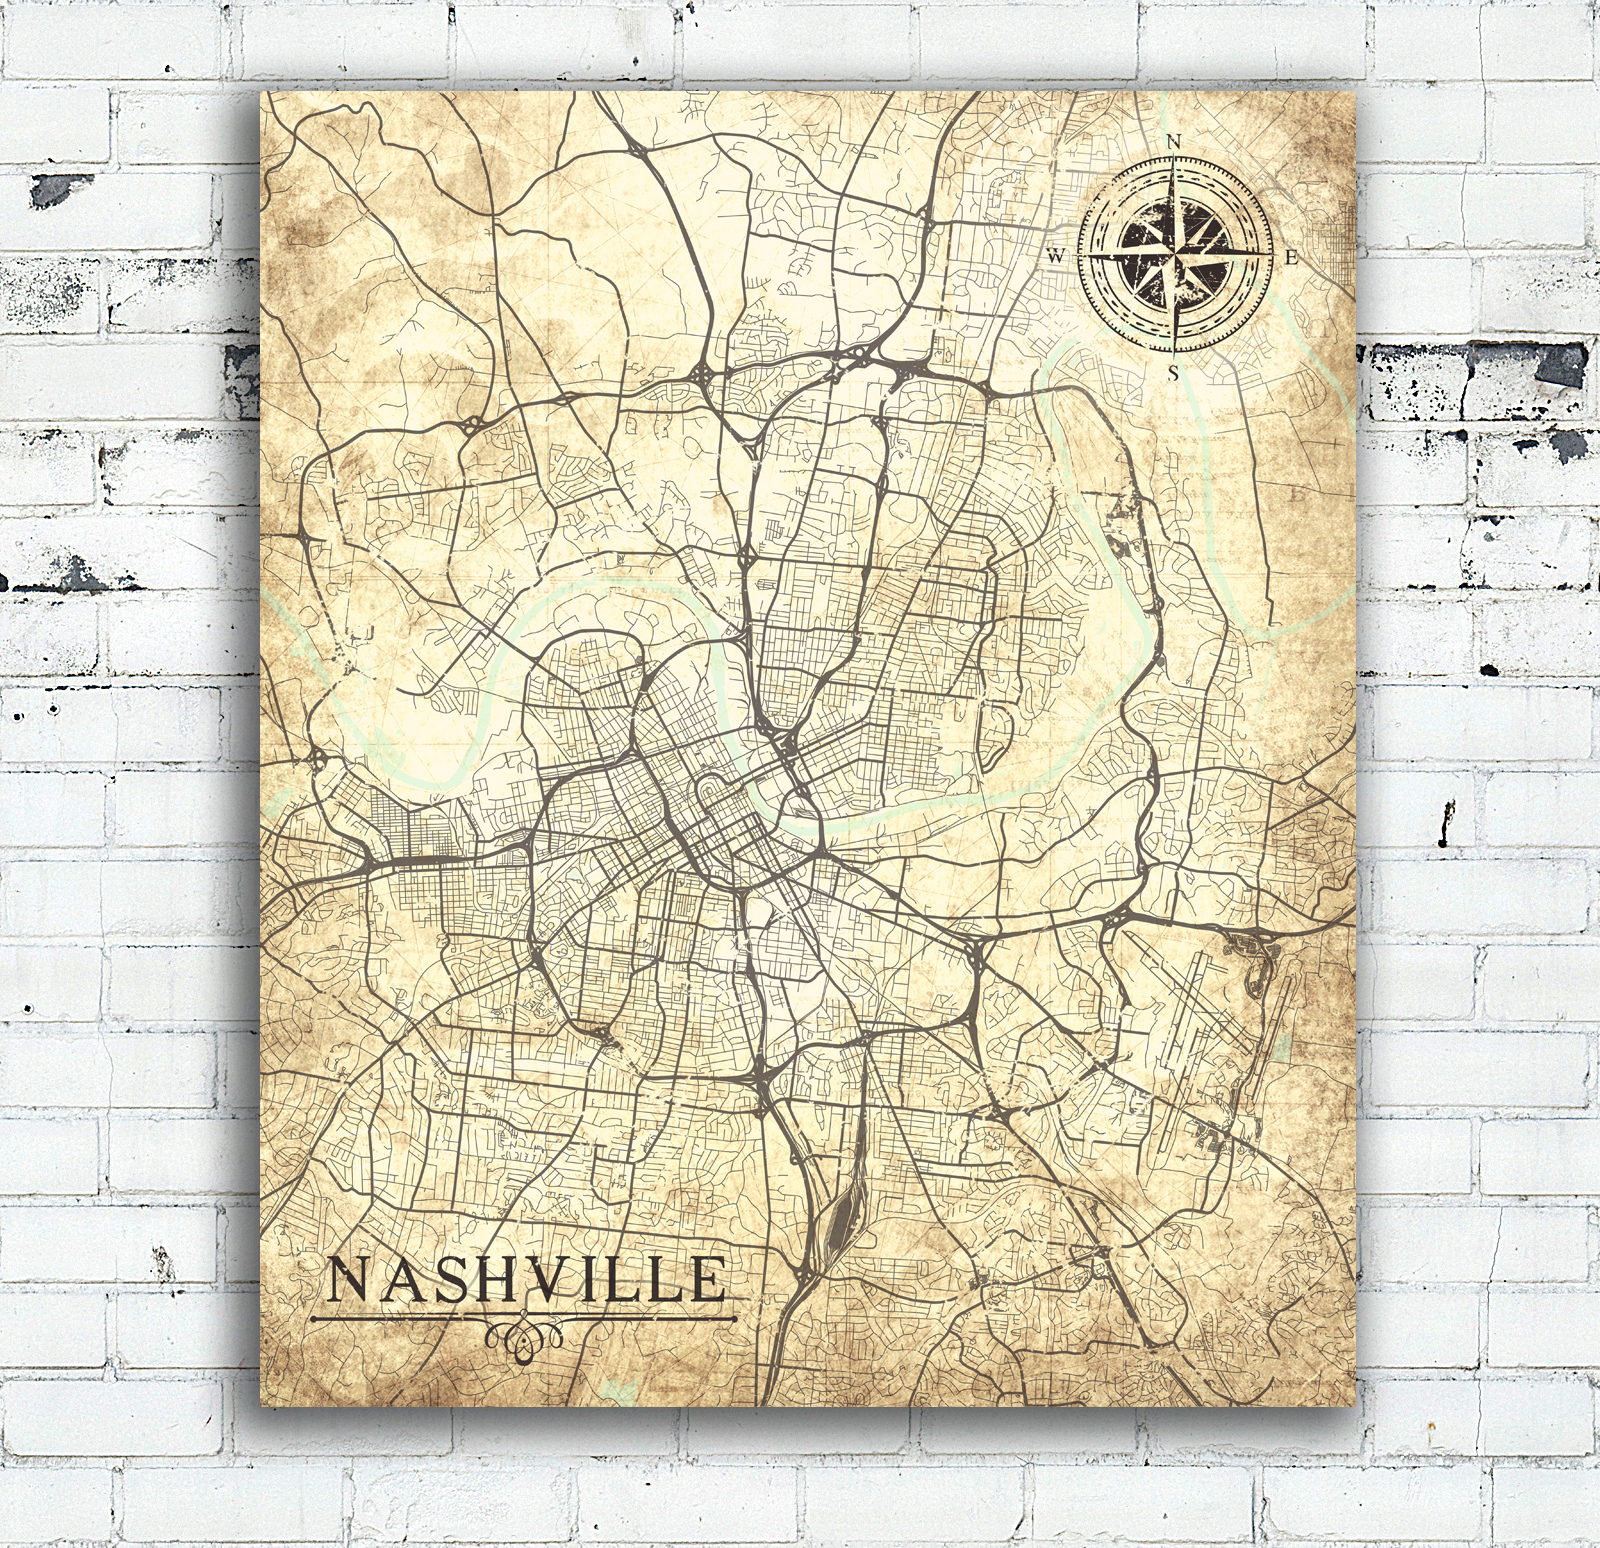 NASHVILLE TN Canvas Print Tennessee TN Vintage map Nashville Tn City on